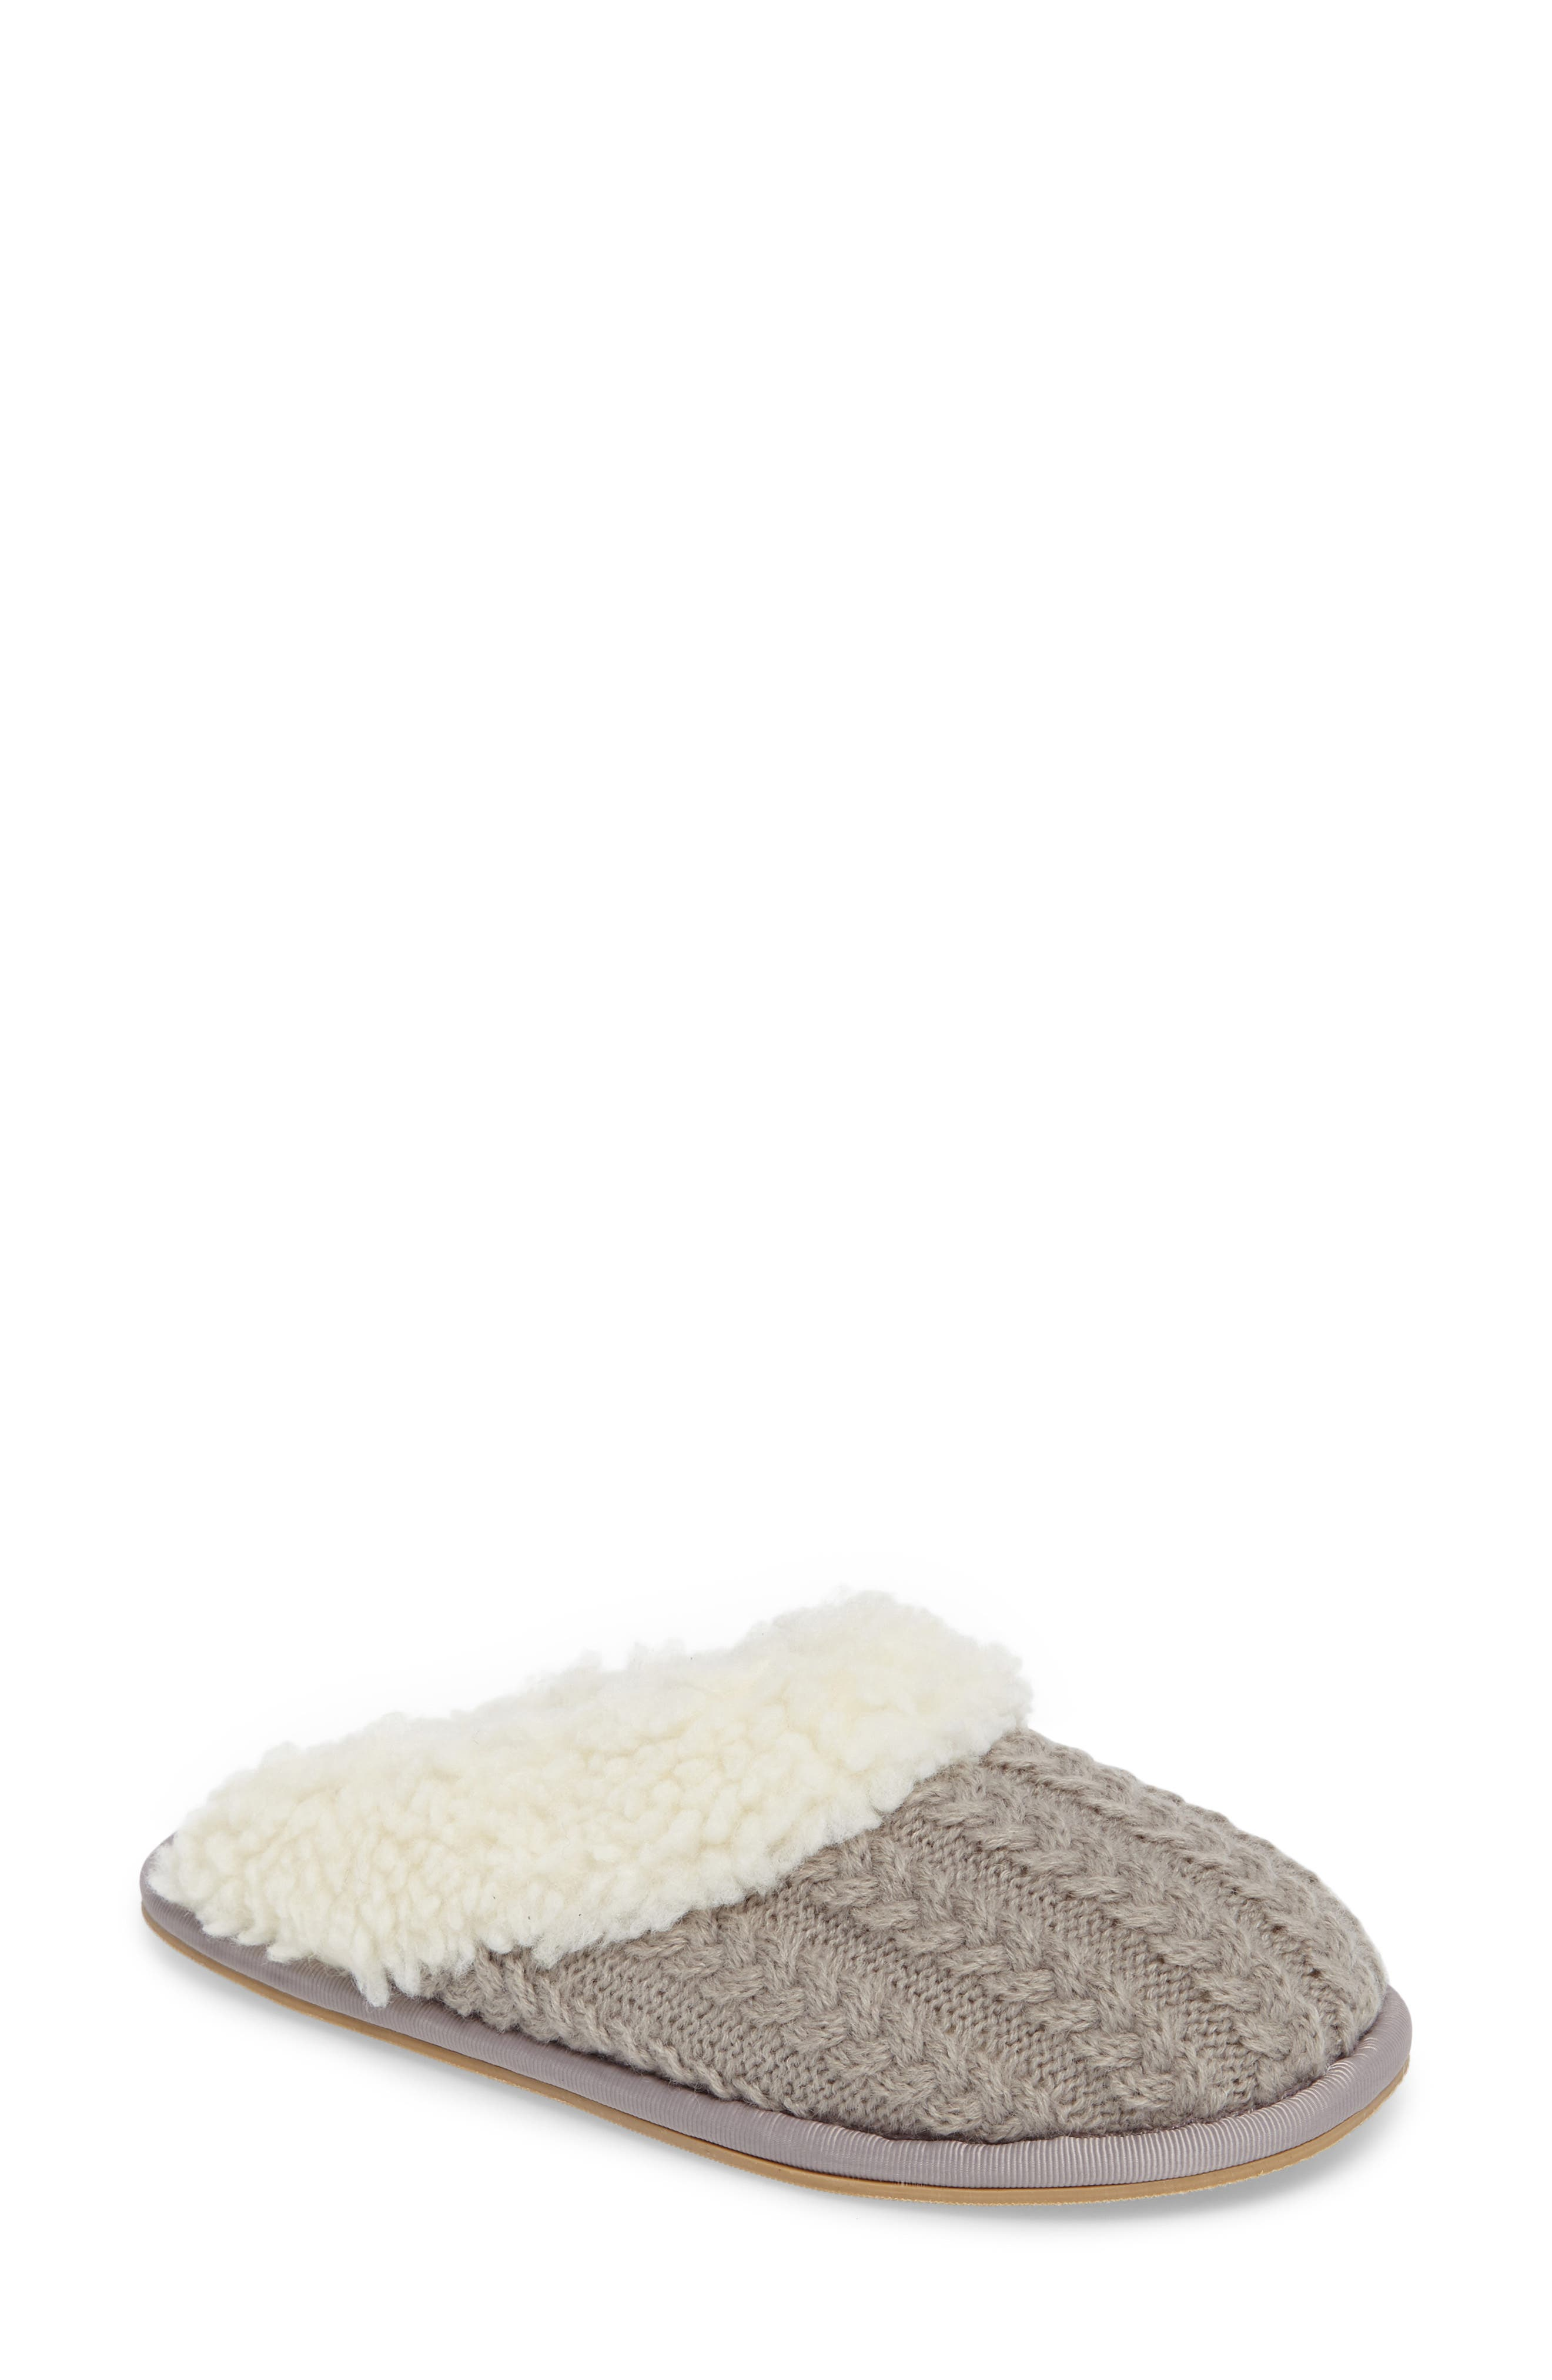 Alternate Image 1 Selected - patricia green Celia Cable Knit Slipper (Women)